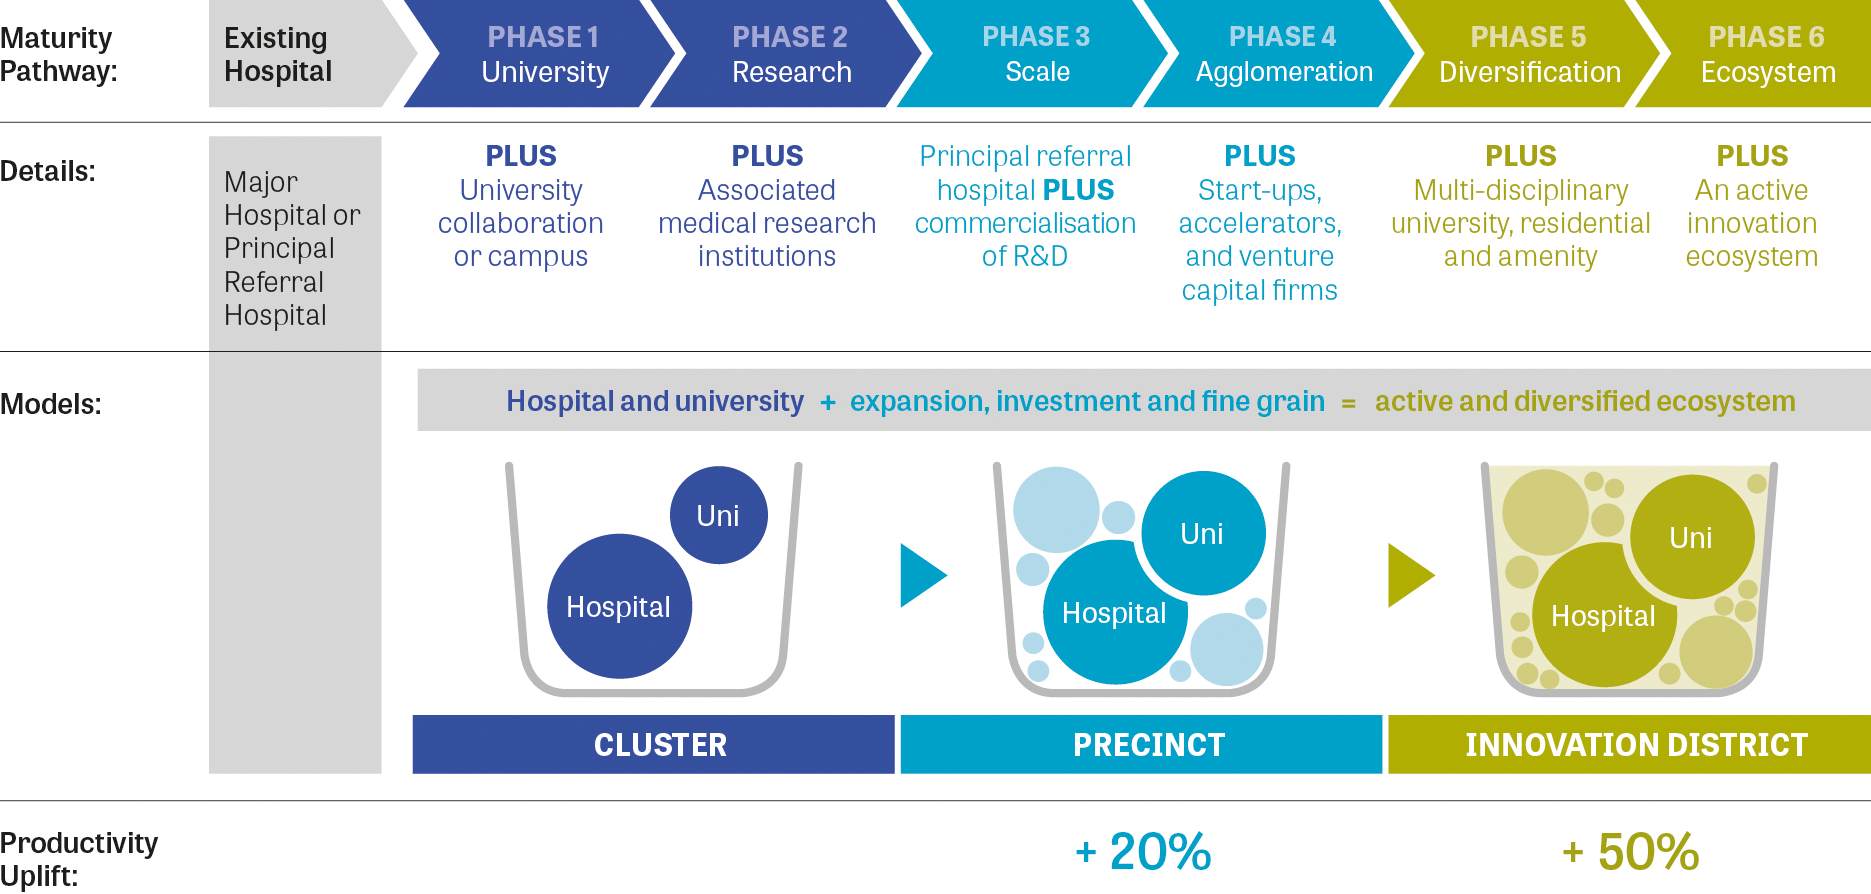 Figure 17: Maturity pathway for health and education precincts.